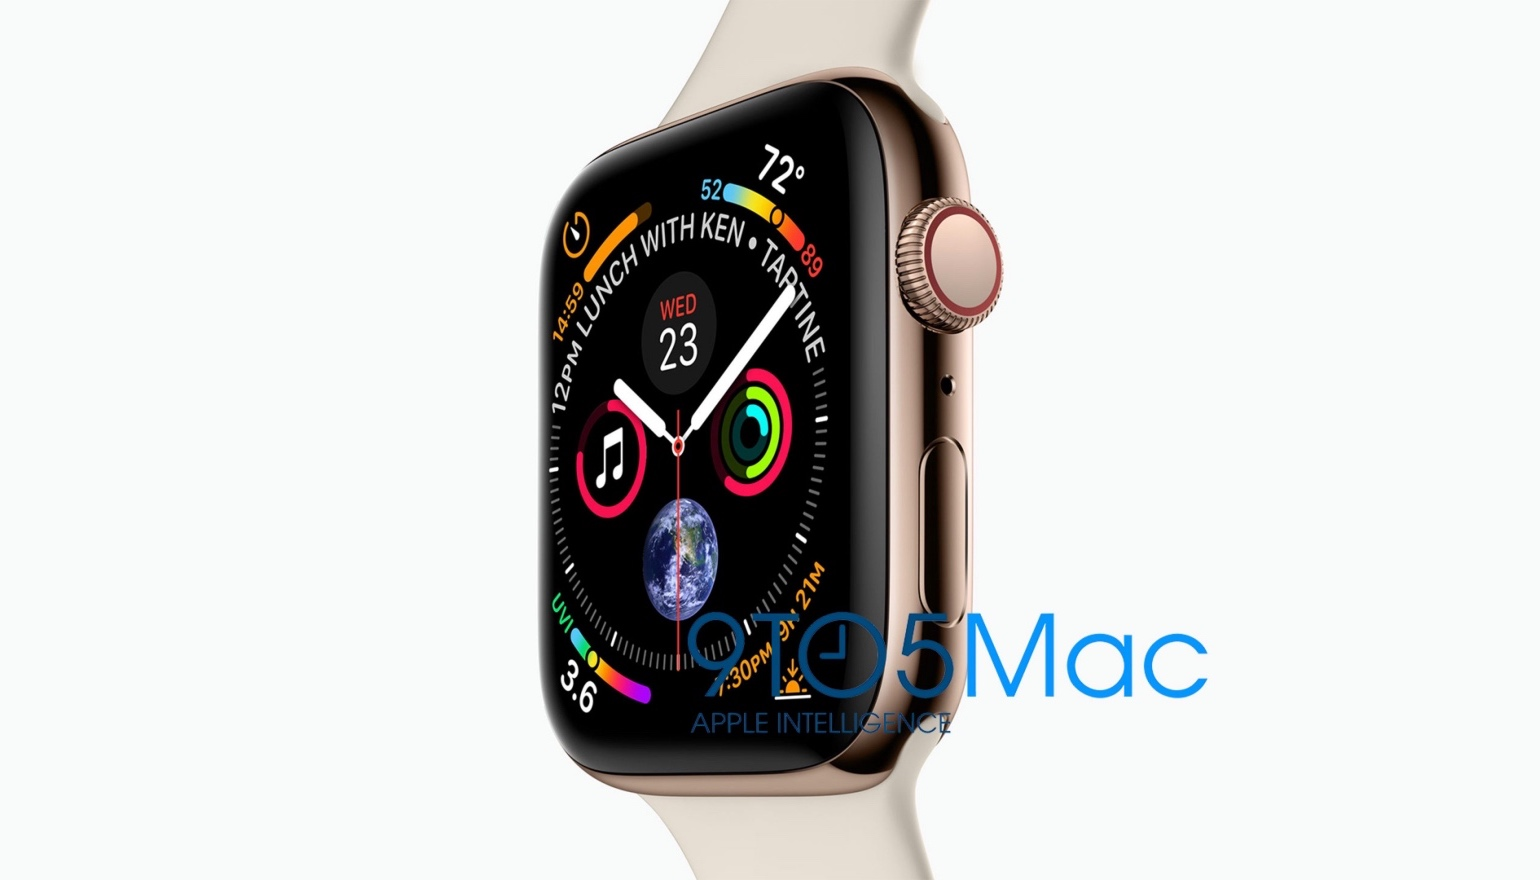 Eerste foto van de Apple Watch Series 4 gelekt